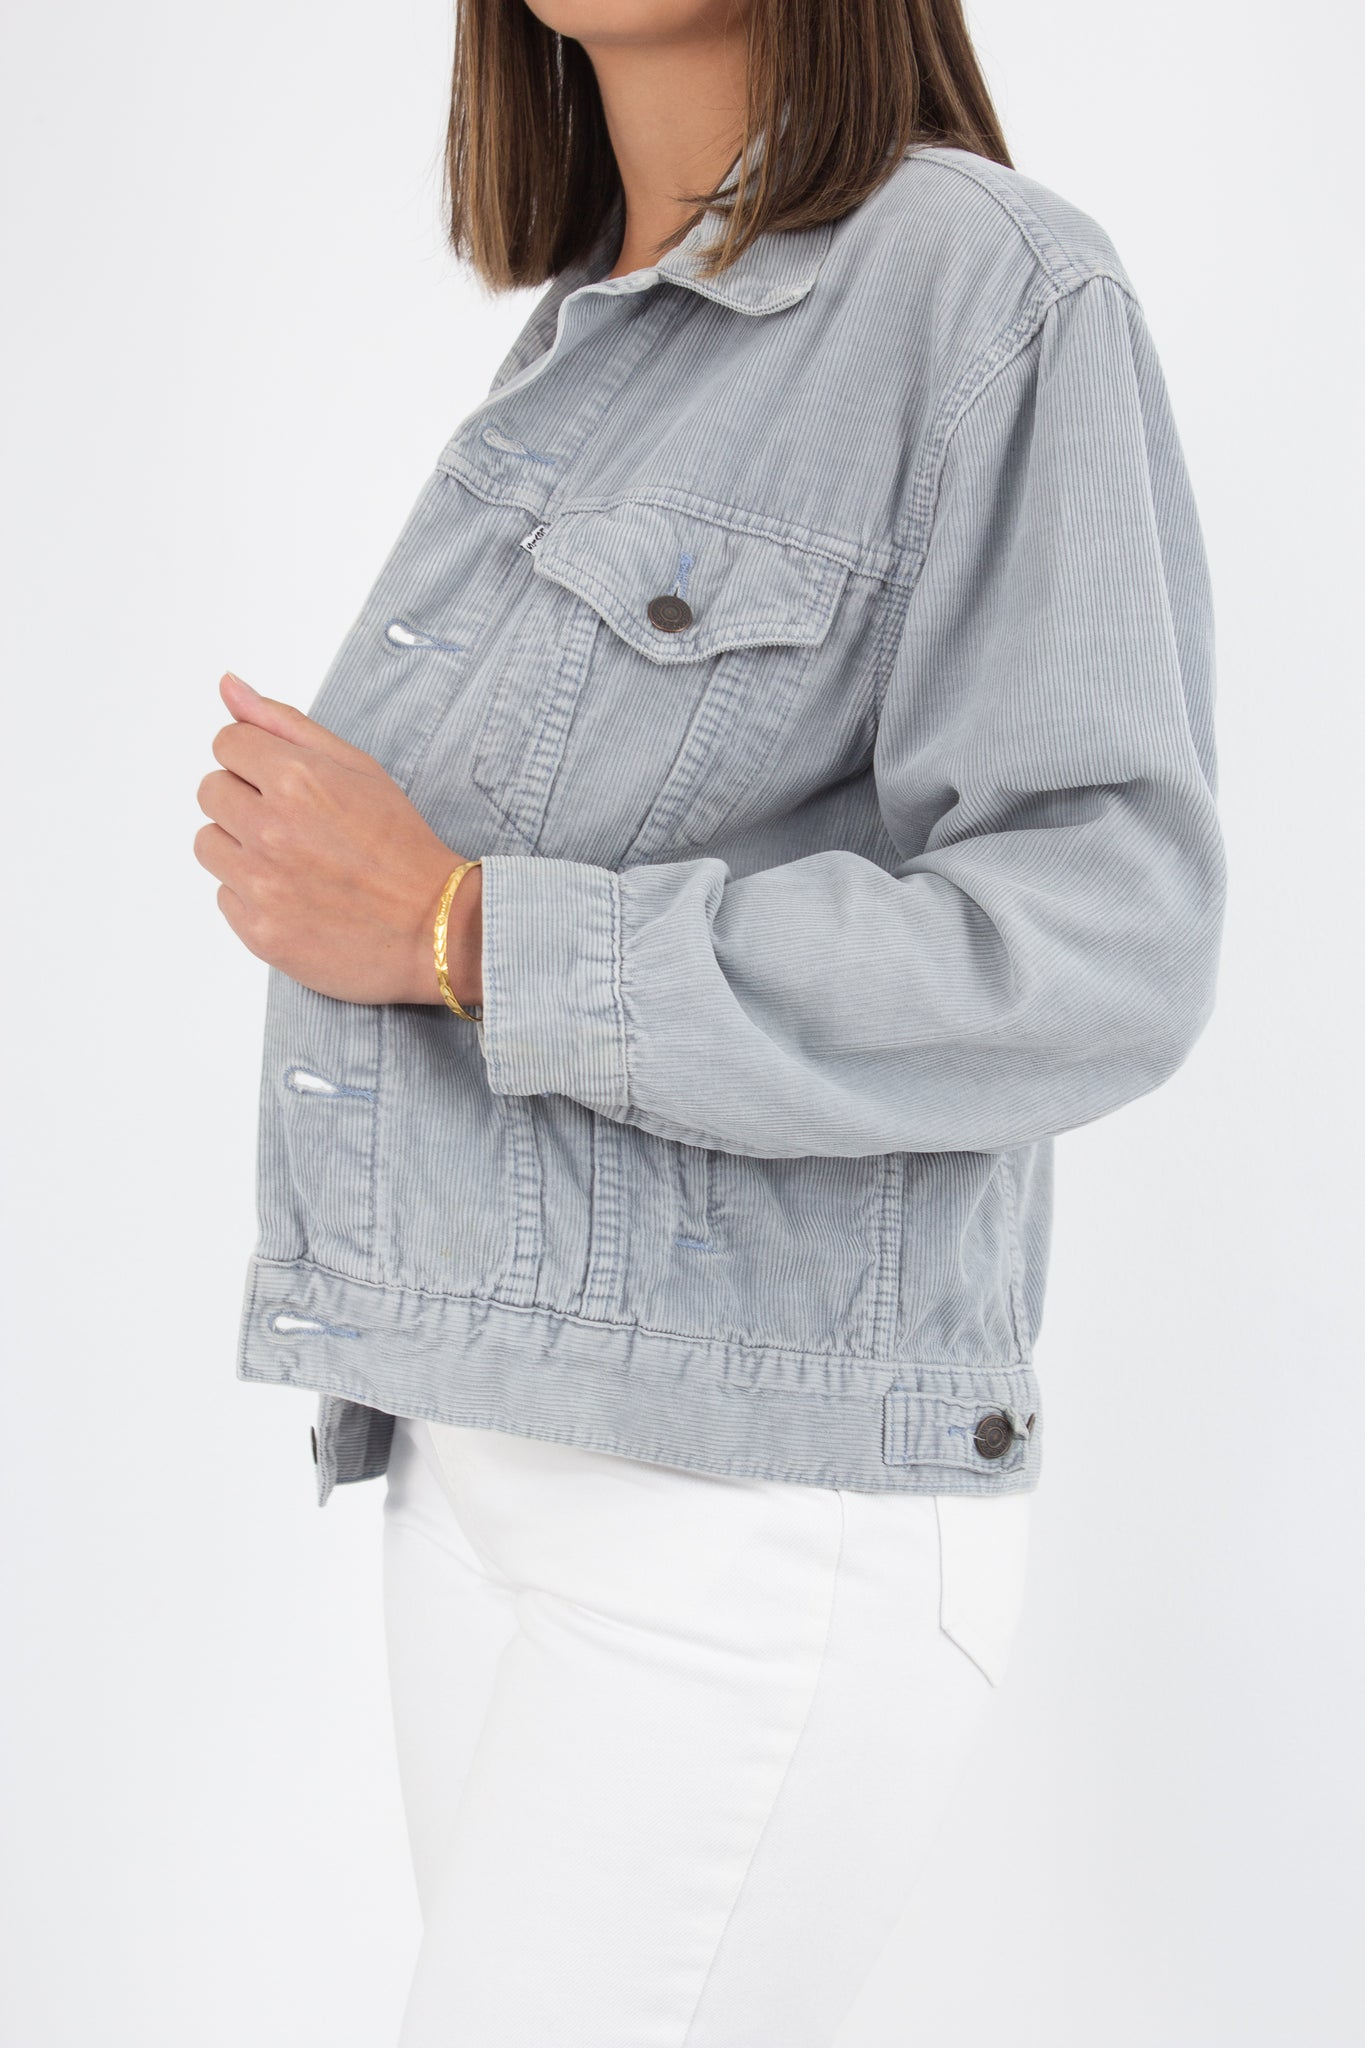 Levis Cord Jacket - Light Grey - Size S/M